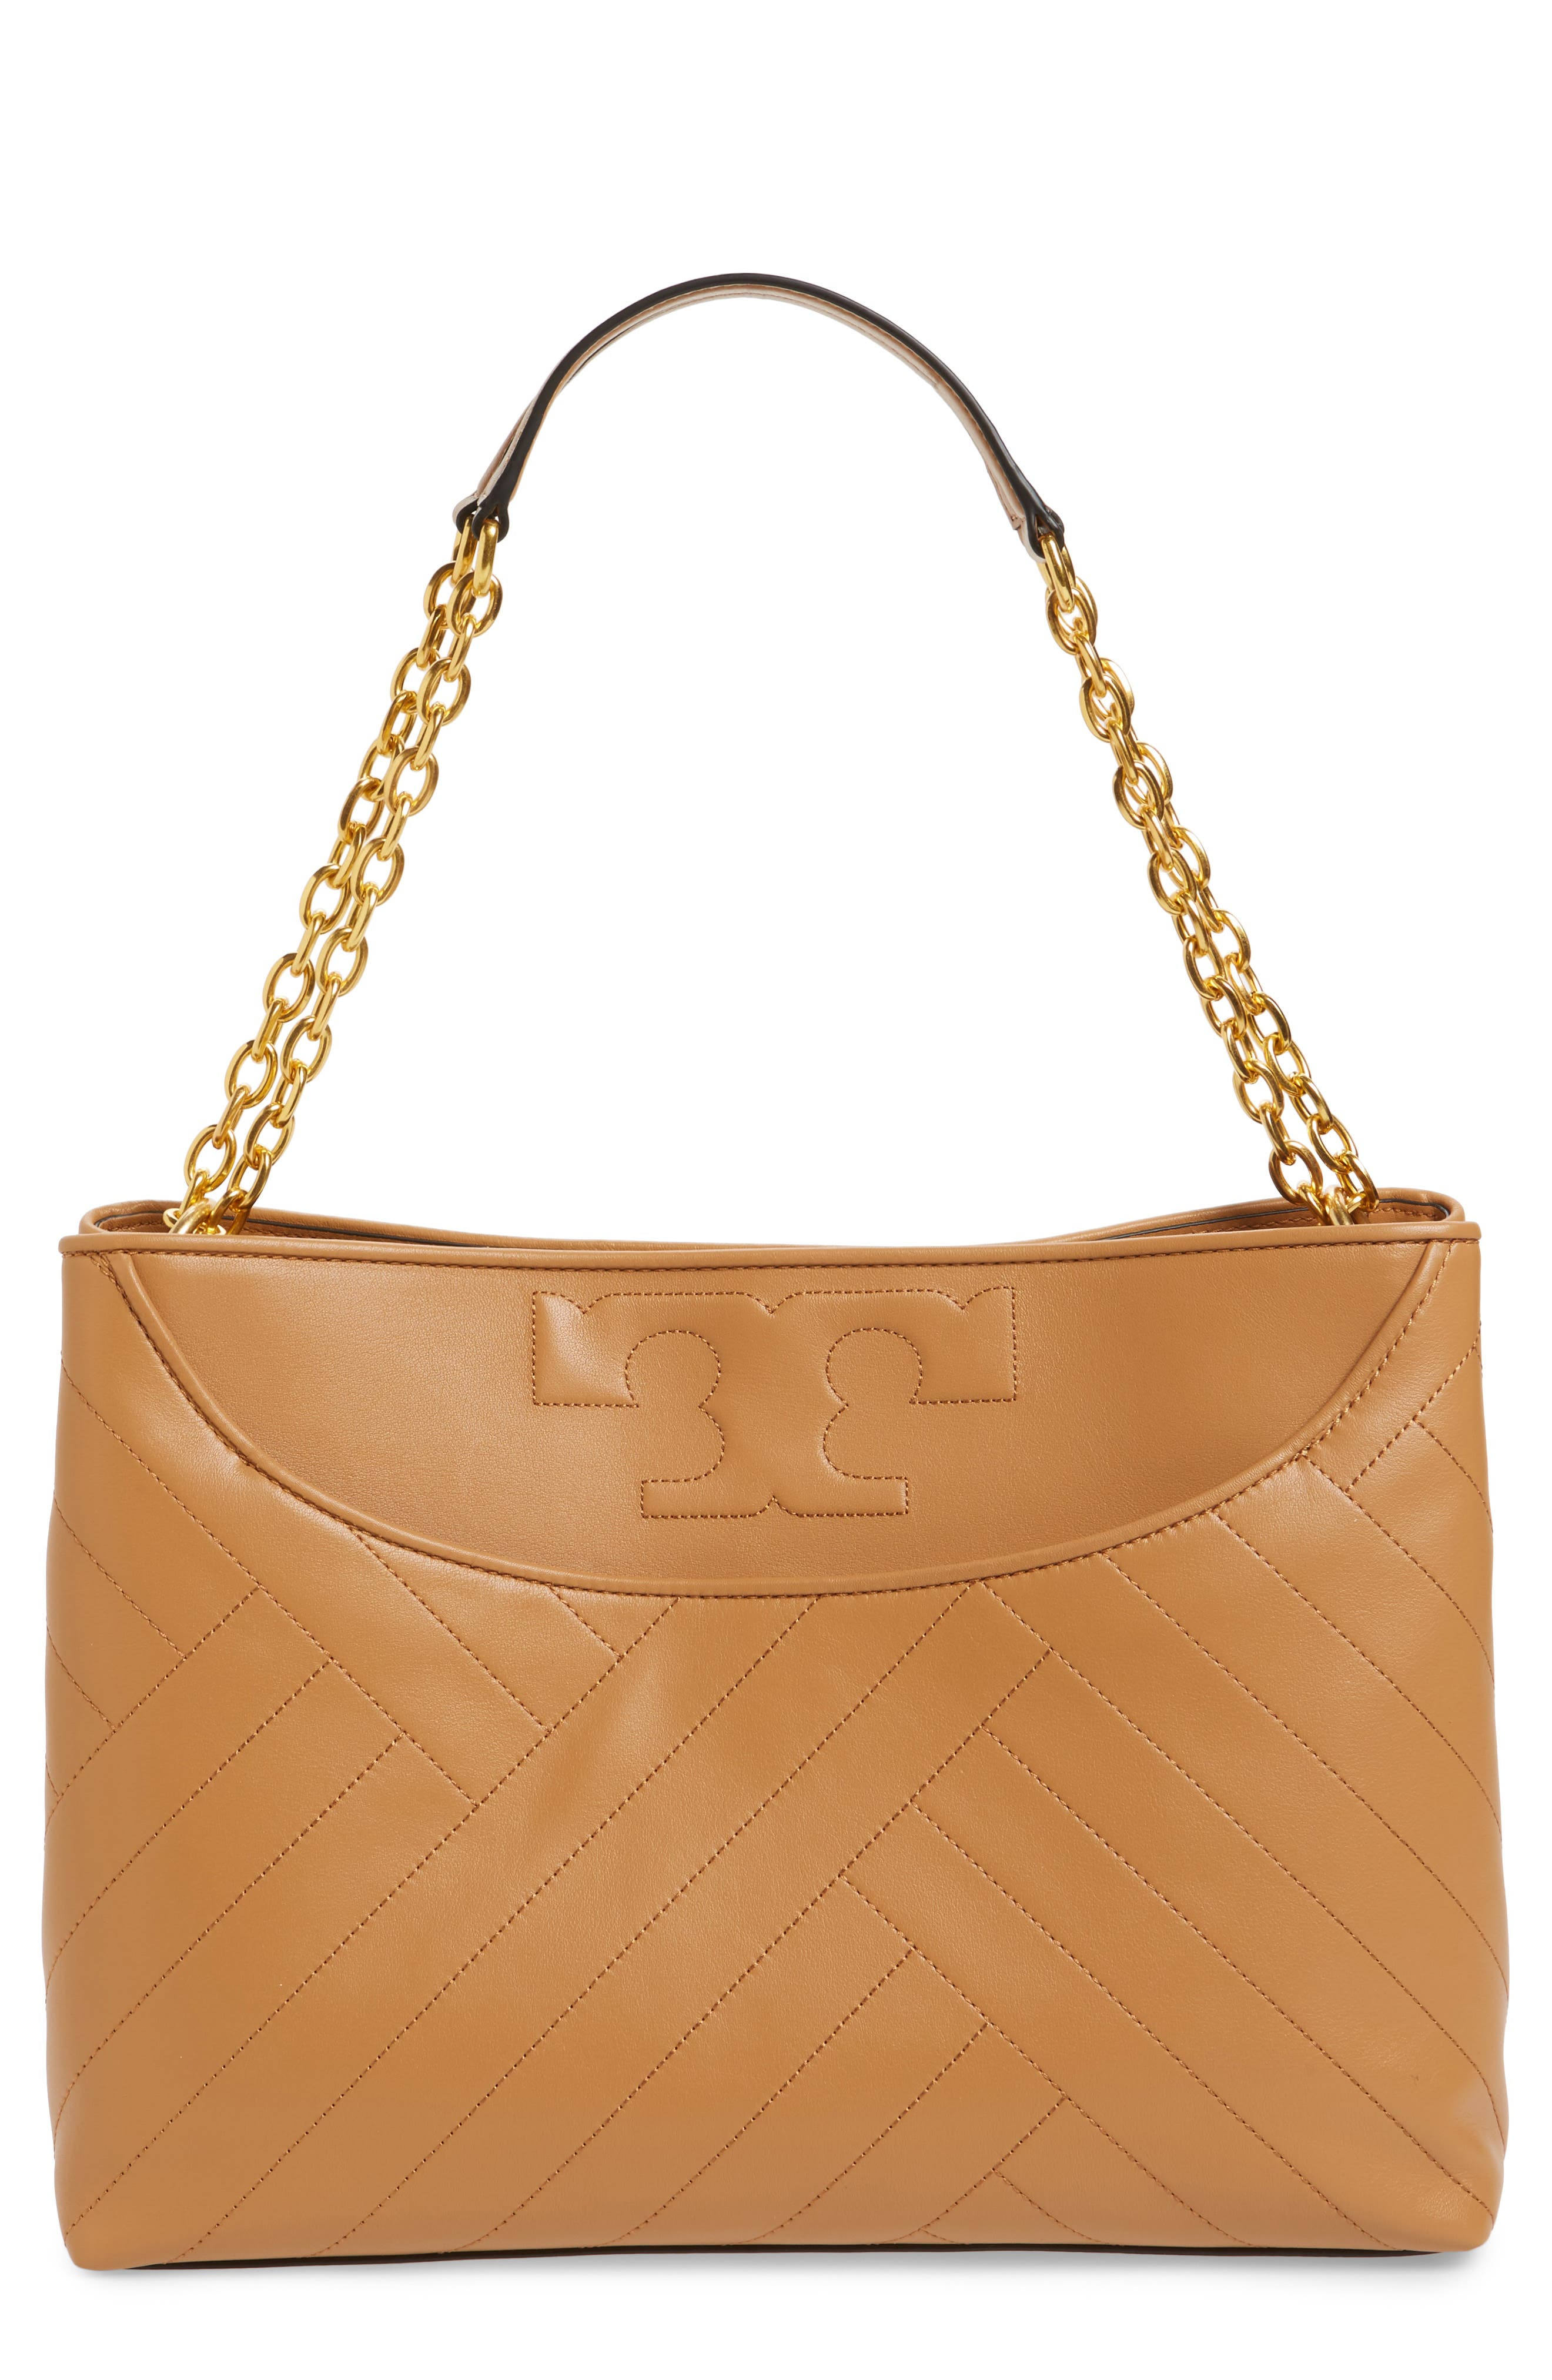 TORY BURCH Alexa Leather Tote